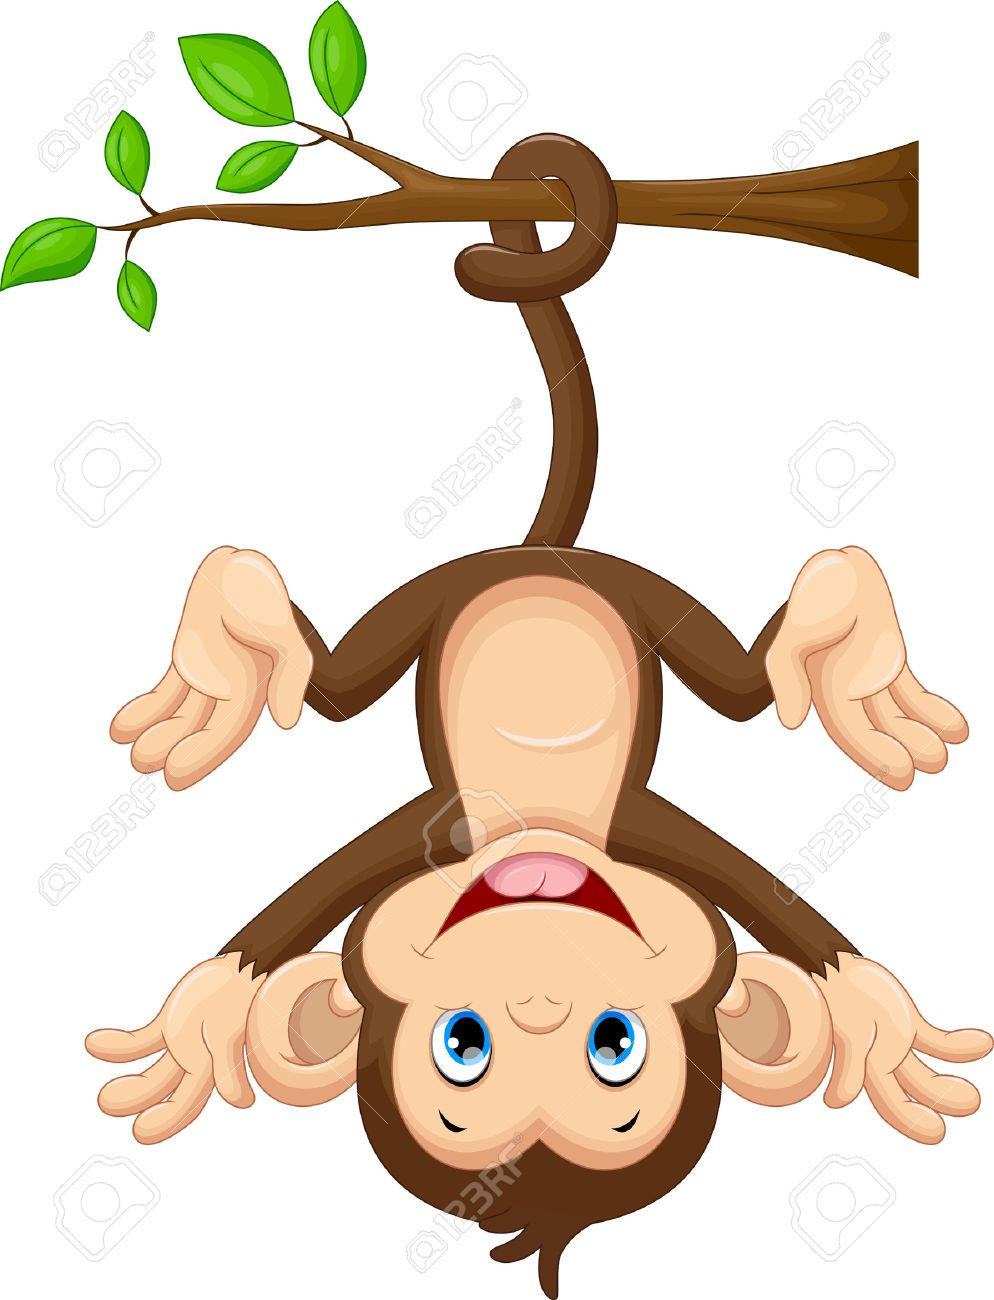 Images for simple cartoon monkey hanging - Cute Baby Monkey Hanging On Tree Stock Vector 50993716